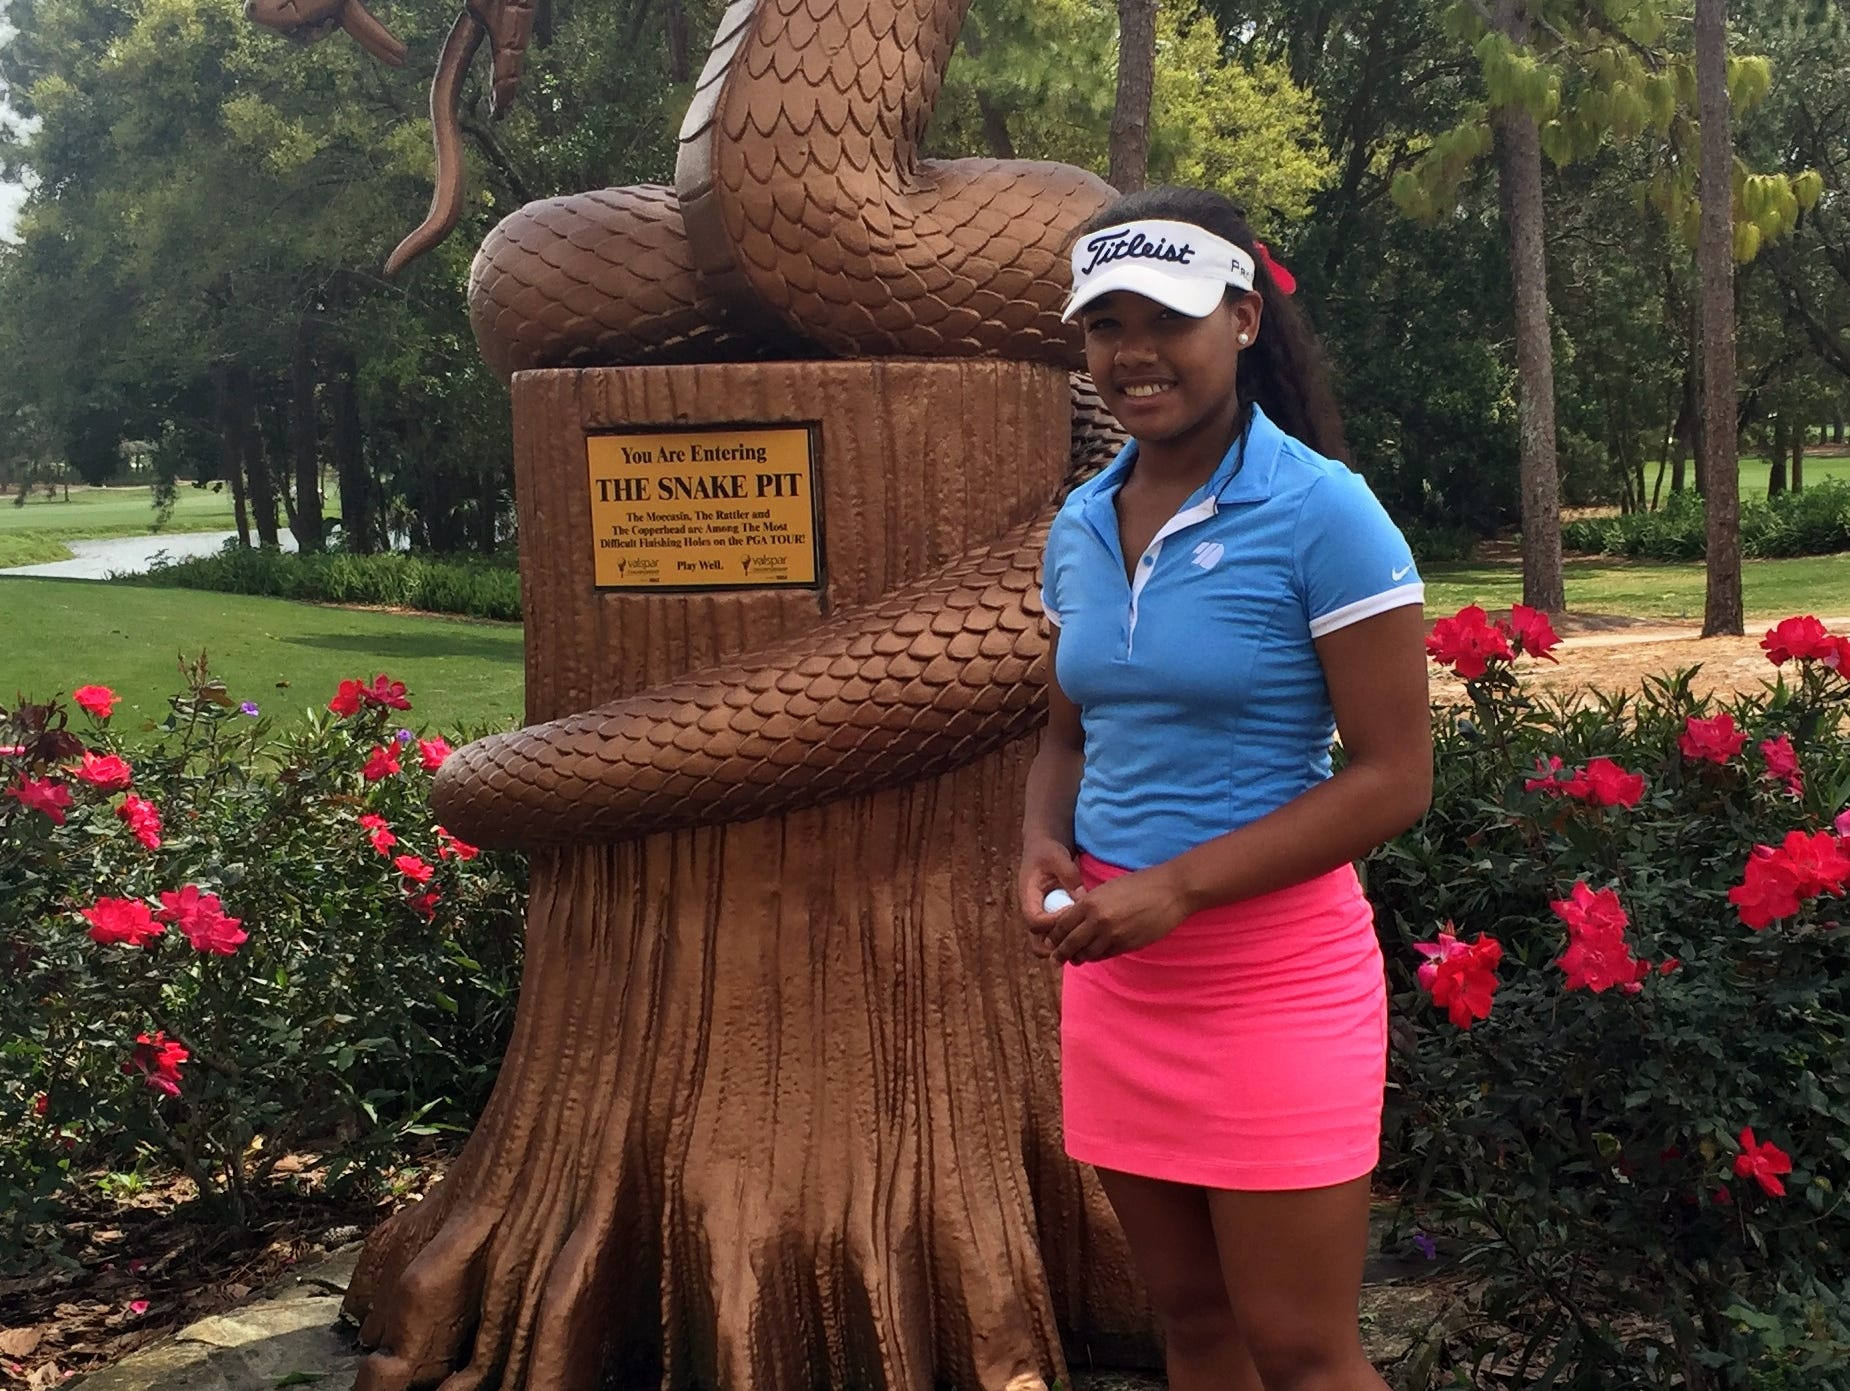 Kyra Cox spent 10 days in Florida, playing an AJGA event and prepping for the Drive, Chip & Putt championship at Augusta National.